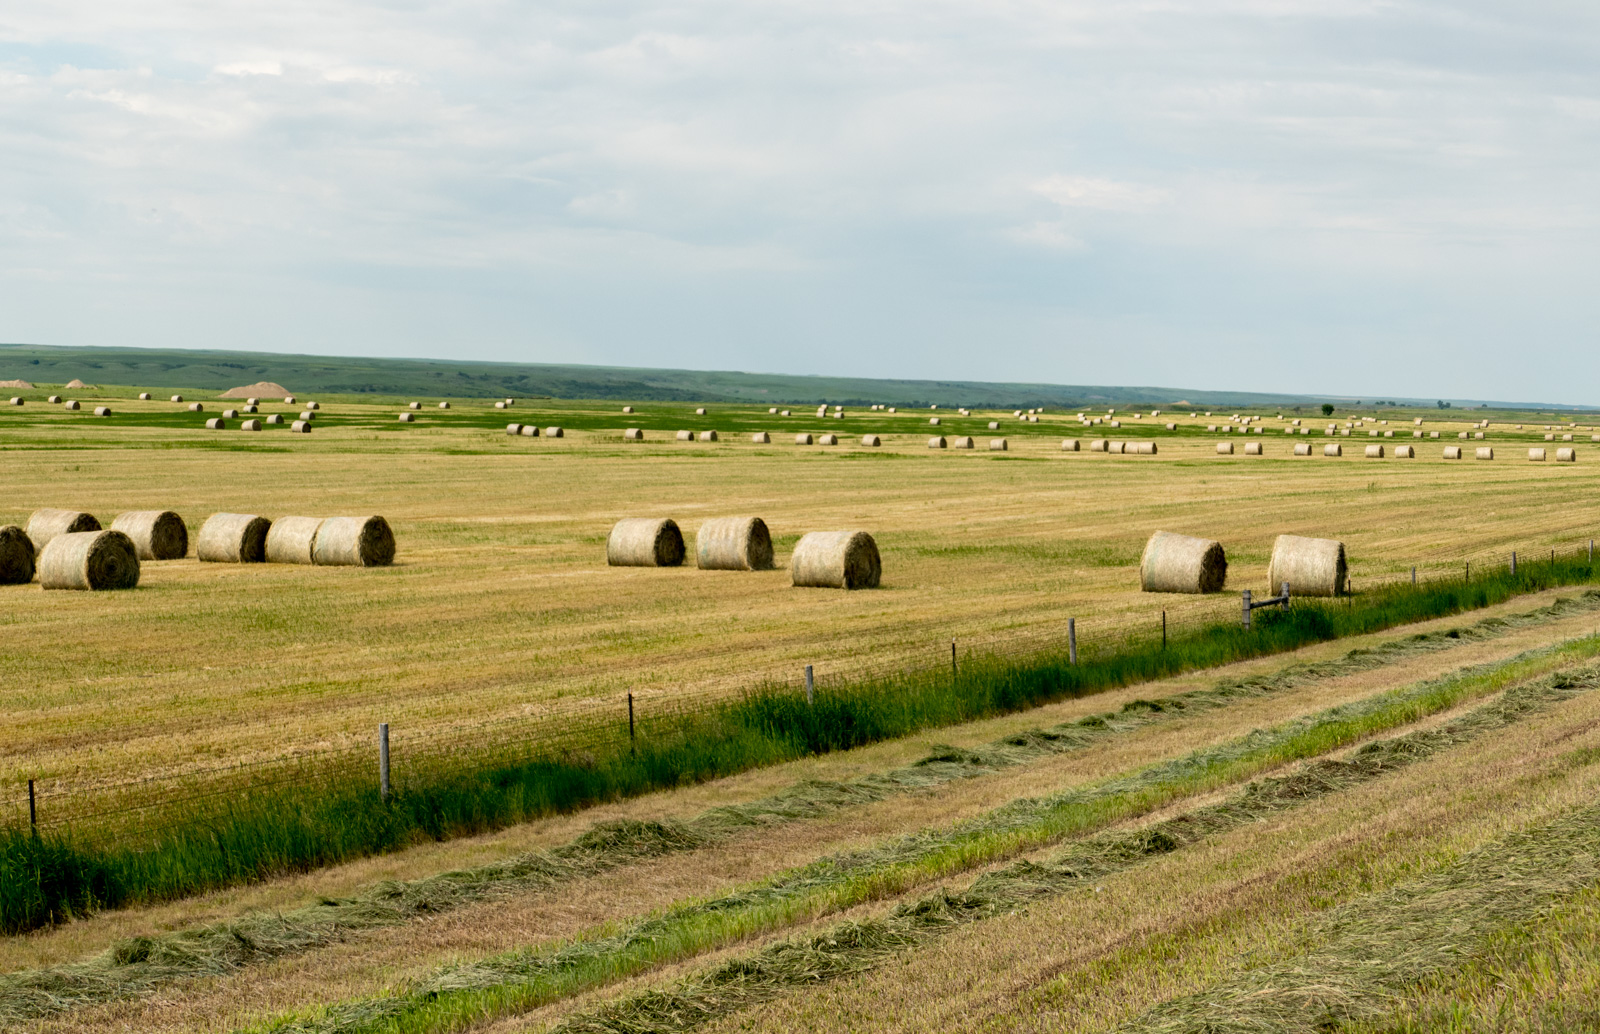 Making hay on the plains